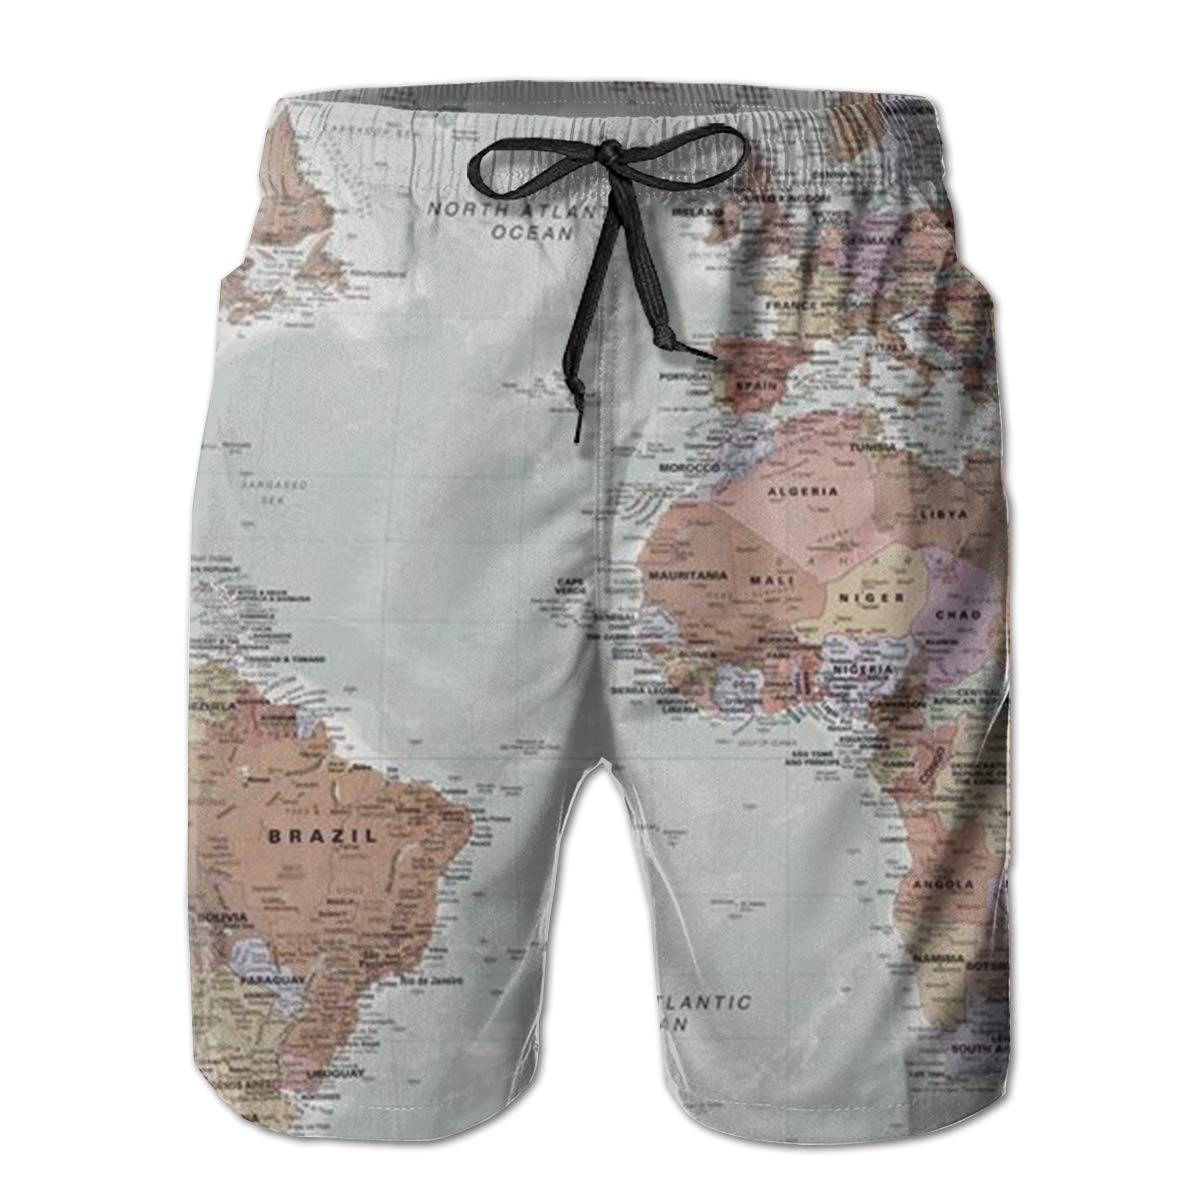 LDFUMG World Map Mural Mens Beach Board Shorts Quick Dry Summer Casual Swimming Soft Fabric with Pocket